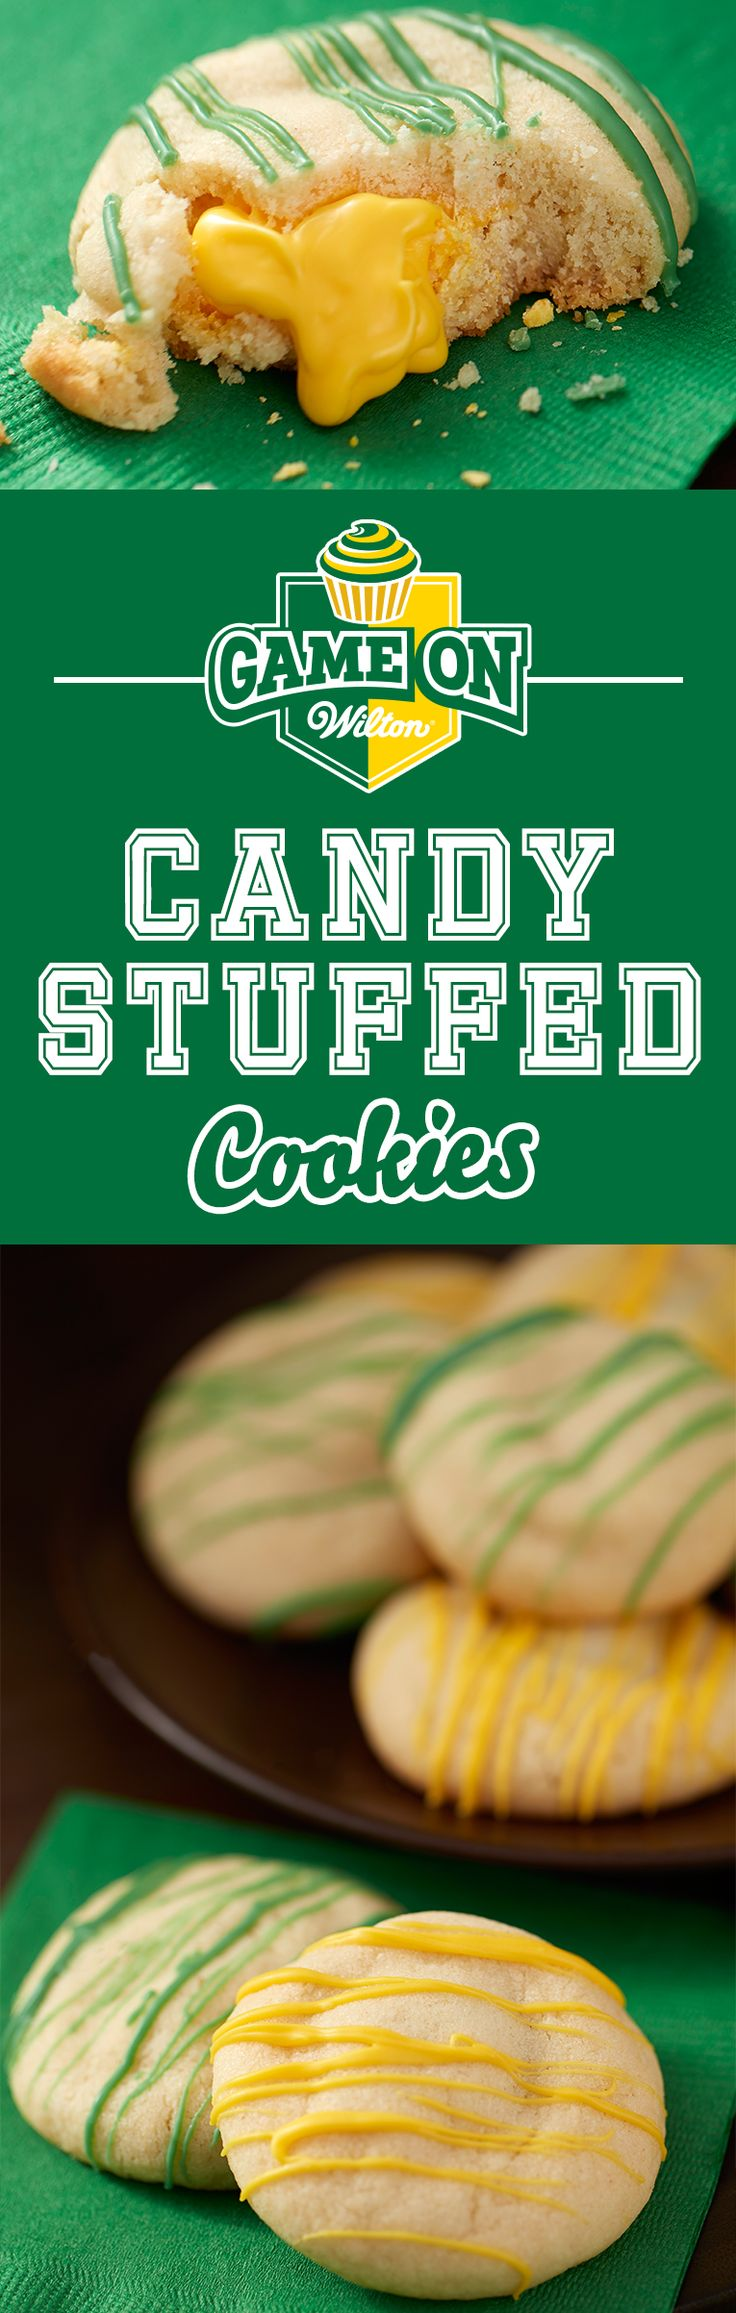 Show your team spirit with Surprise Inside Candy Melts Stuffed Cookies! Colorful…